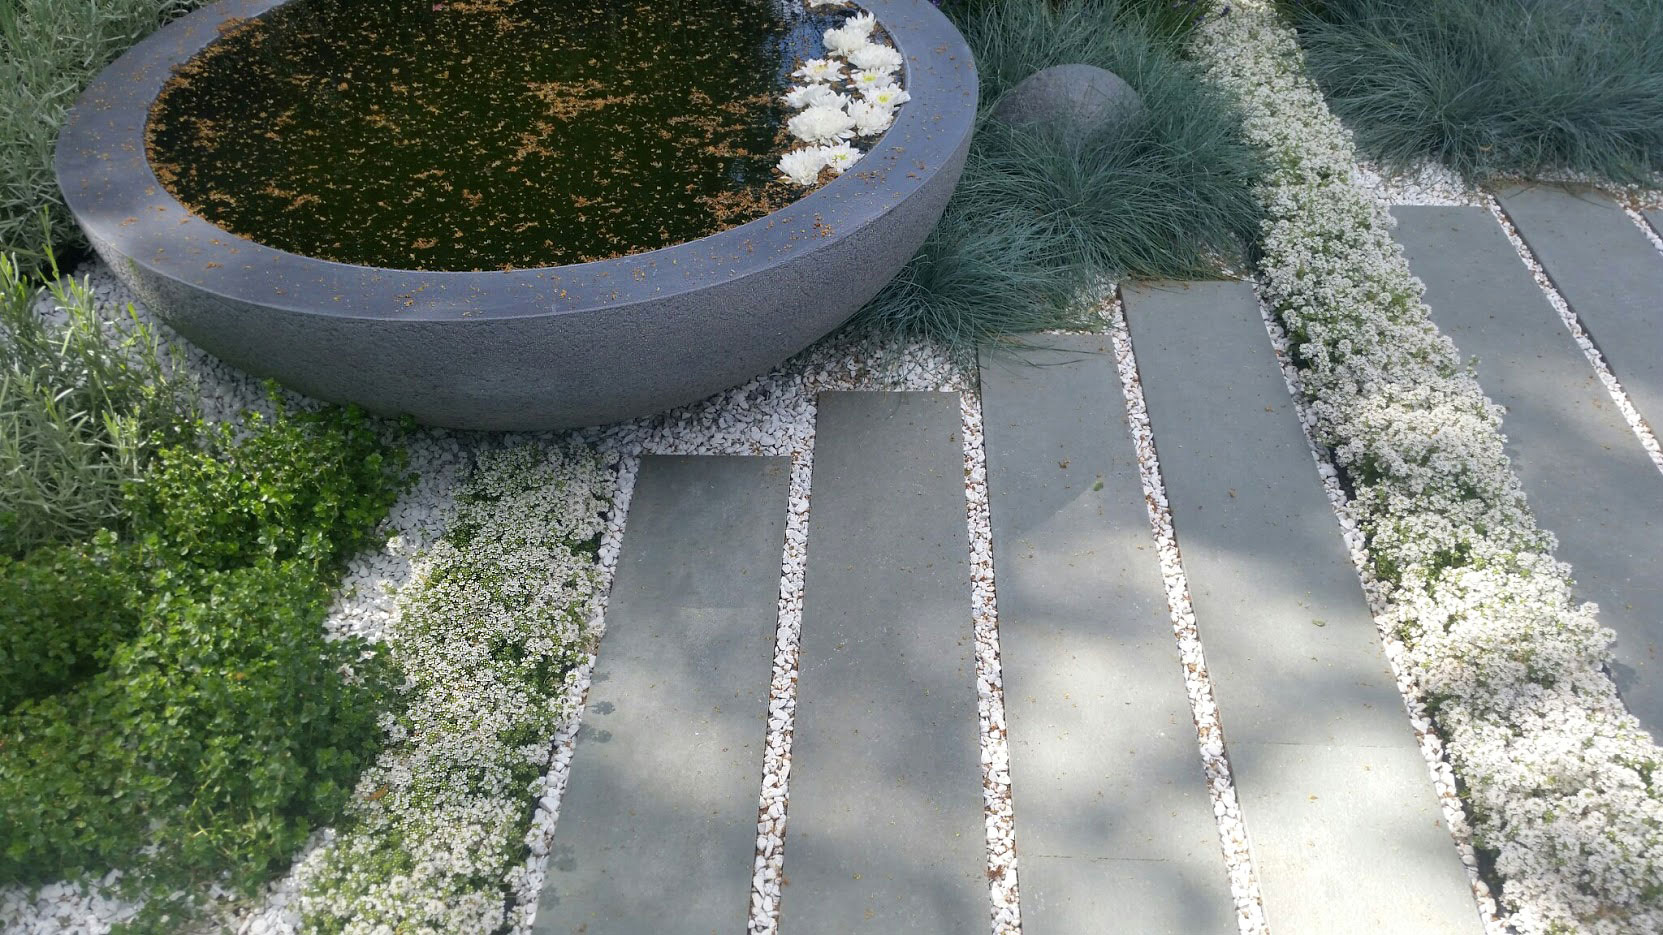 Detail of planter and paving in Rae Wilkinson's RHS Hampton Court Show Garden